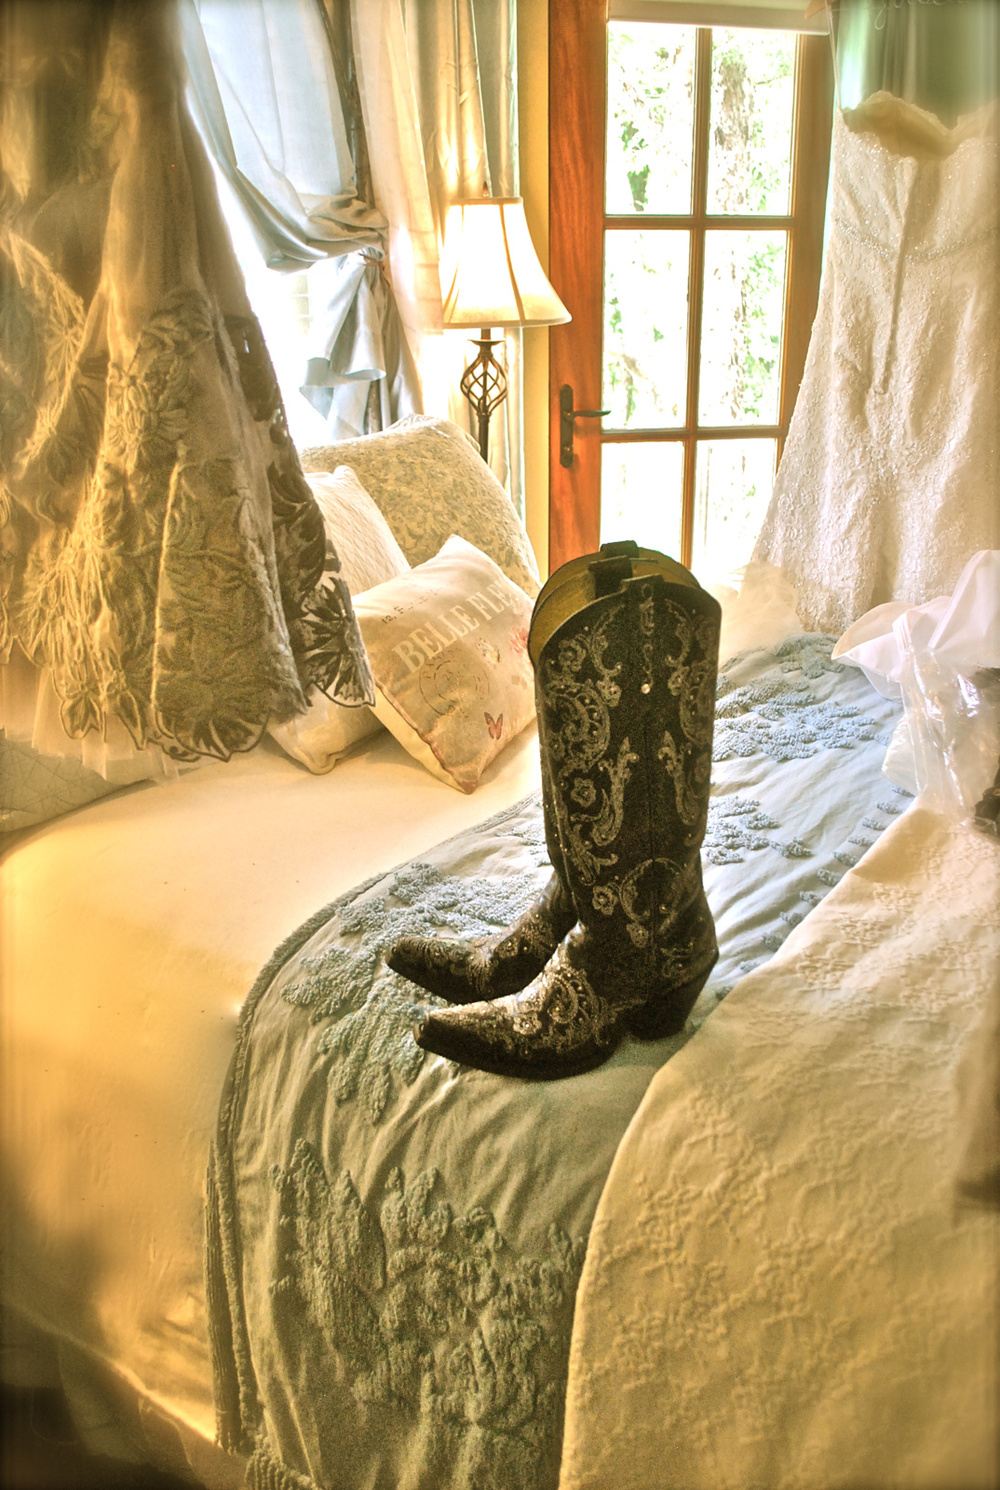 At McKBnB, we only take our boots off for one thing...